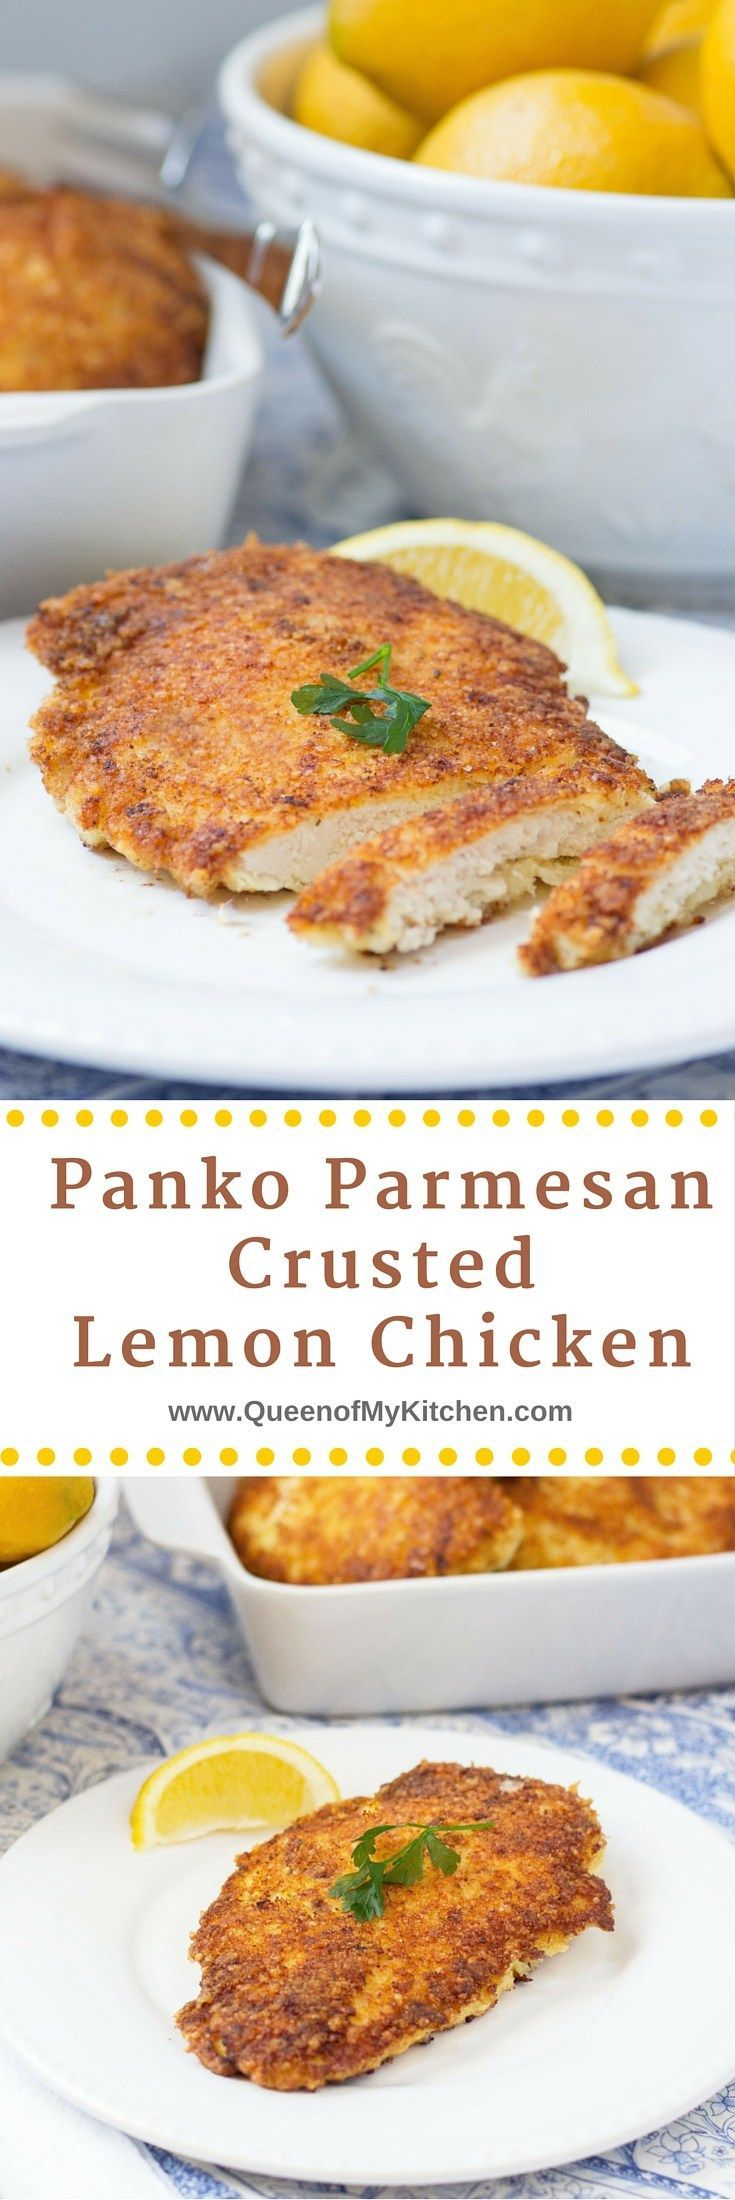 Hands down - the best lemon chicken ever!! Panko Parmesan Crusted Lemon Chicken is crispy, lemony, juicy and delicious. Use it to make chicken parmesan and chicken ceasar salad too.   QueenofMyKitchen.com